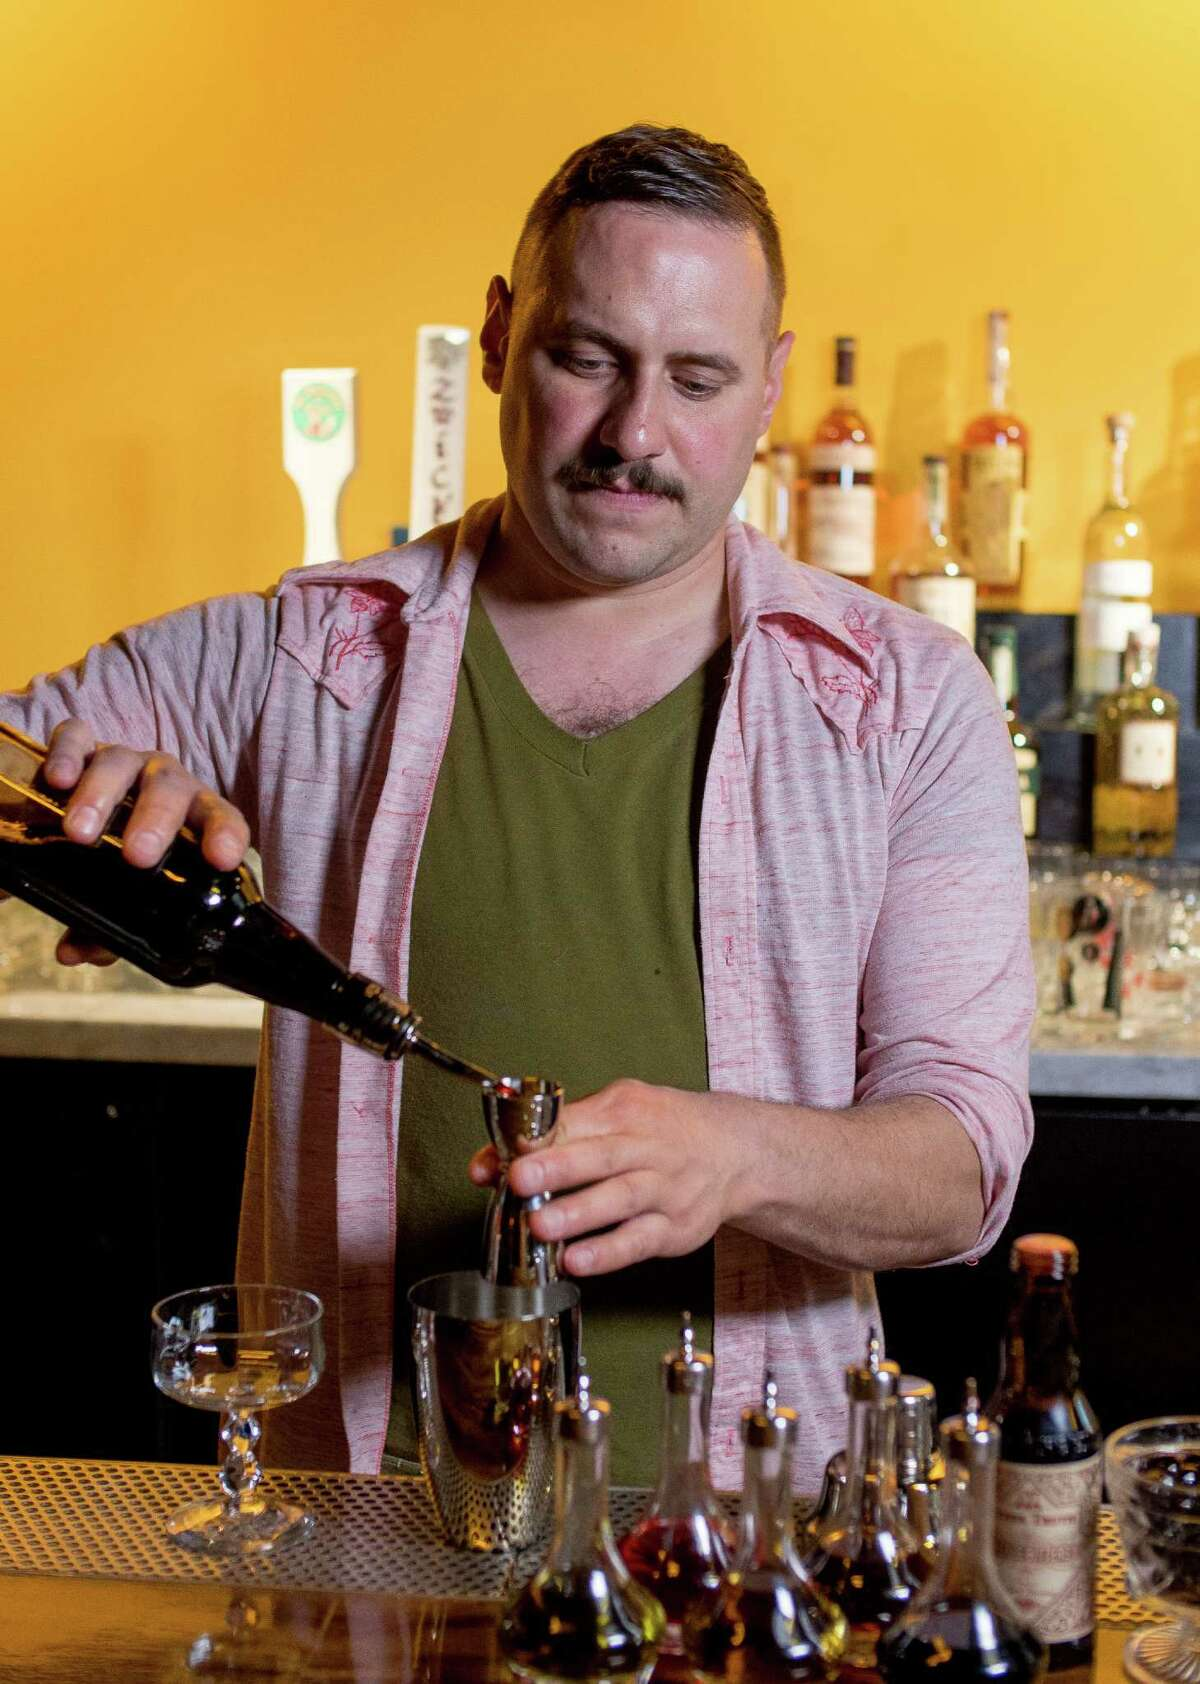 Christ Aivaliotis makes the Trinidad Sour cocktail at Holy Mountain in San Francisco, Calif., on Saturday, February 28th, 2015.